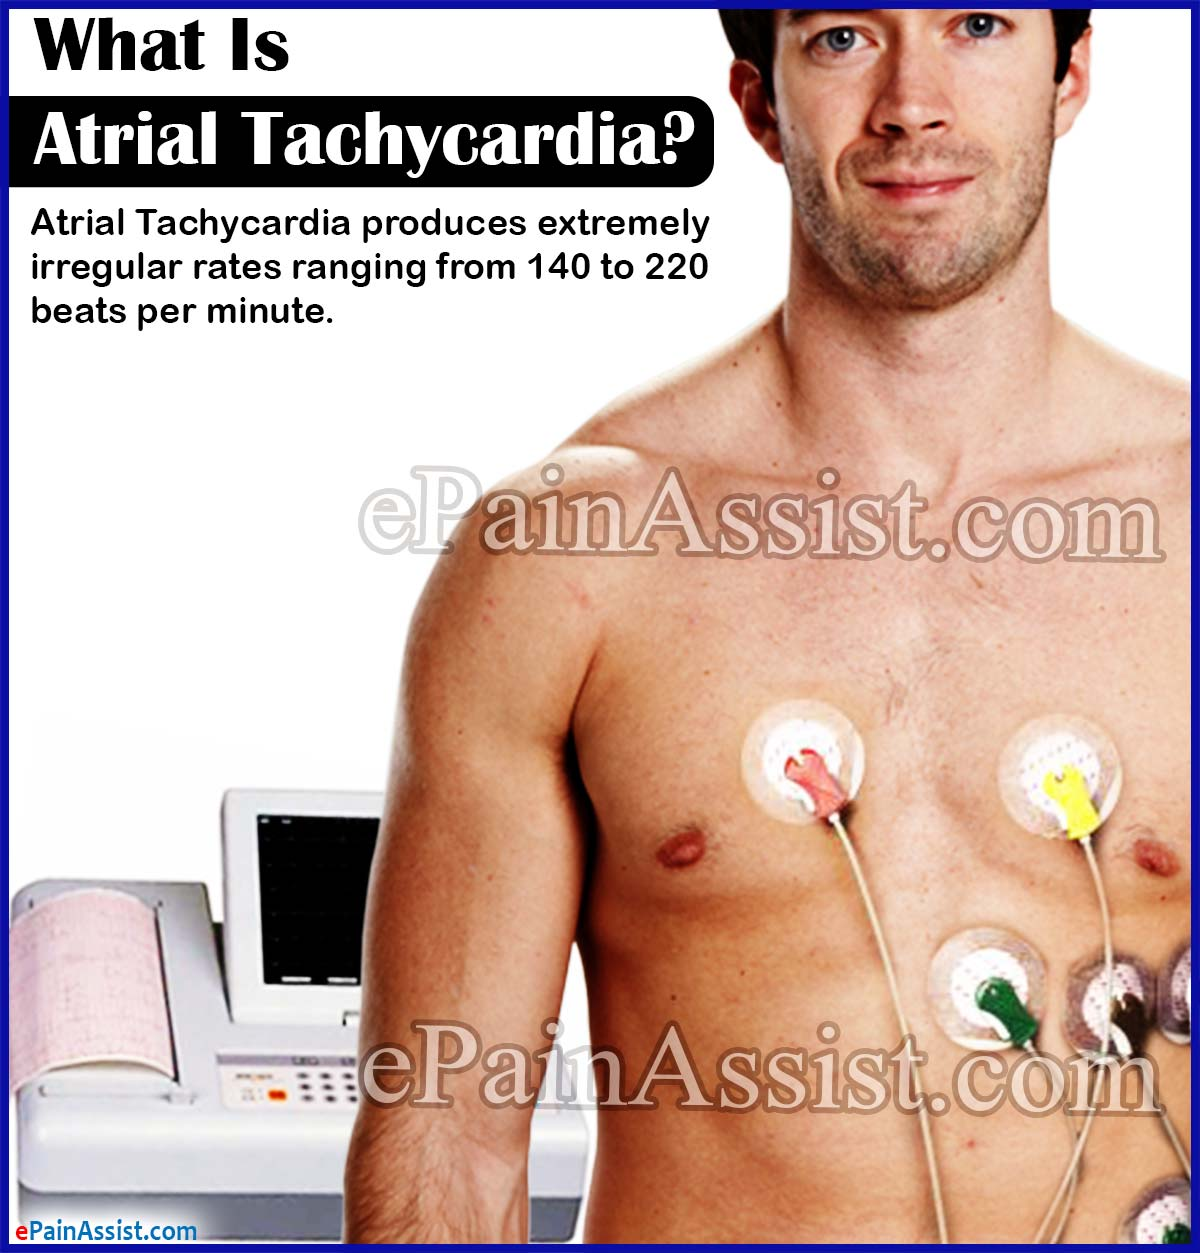 What Is Atrial Tachycardia?